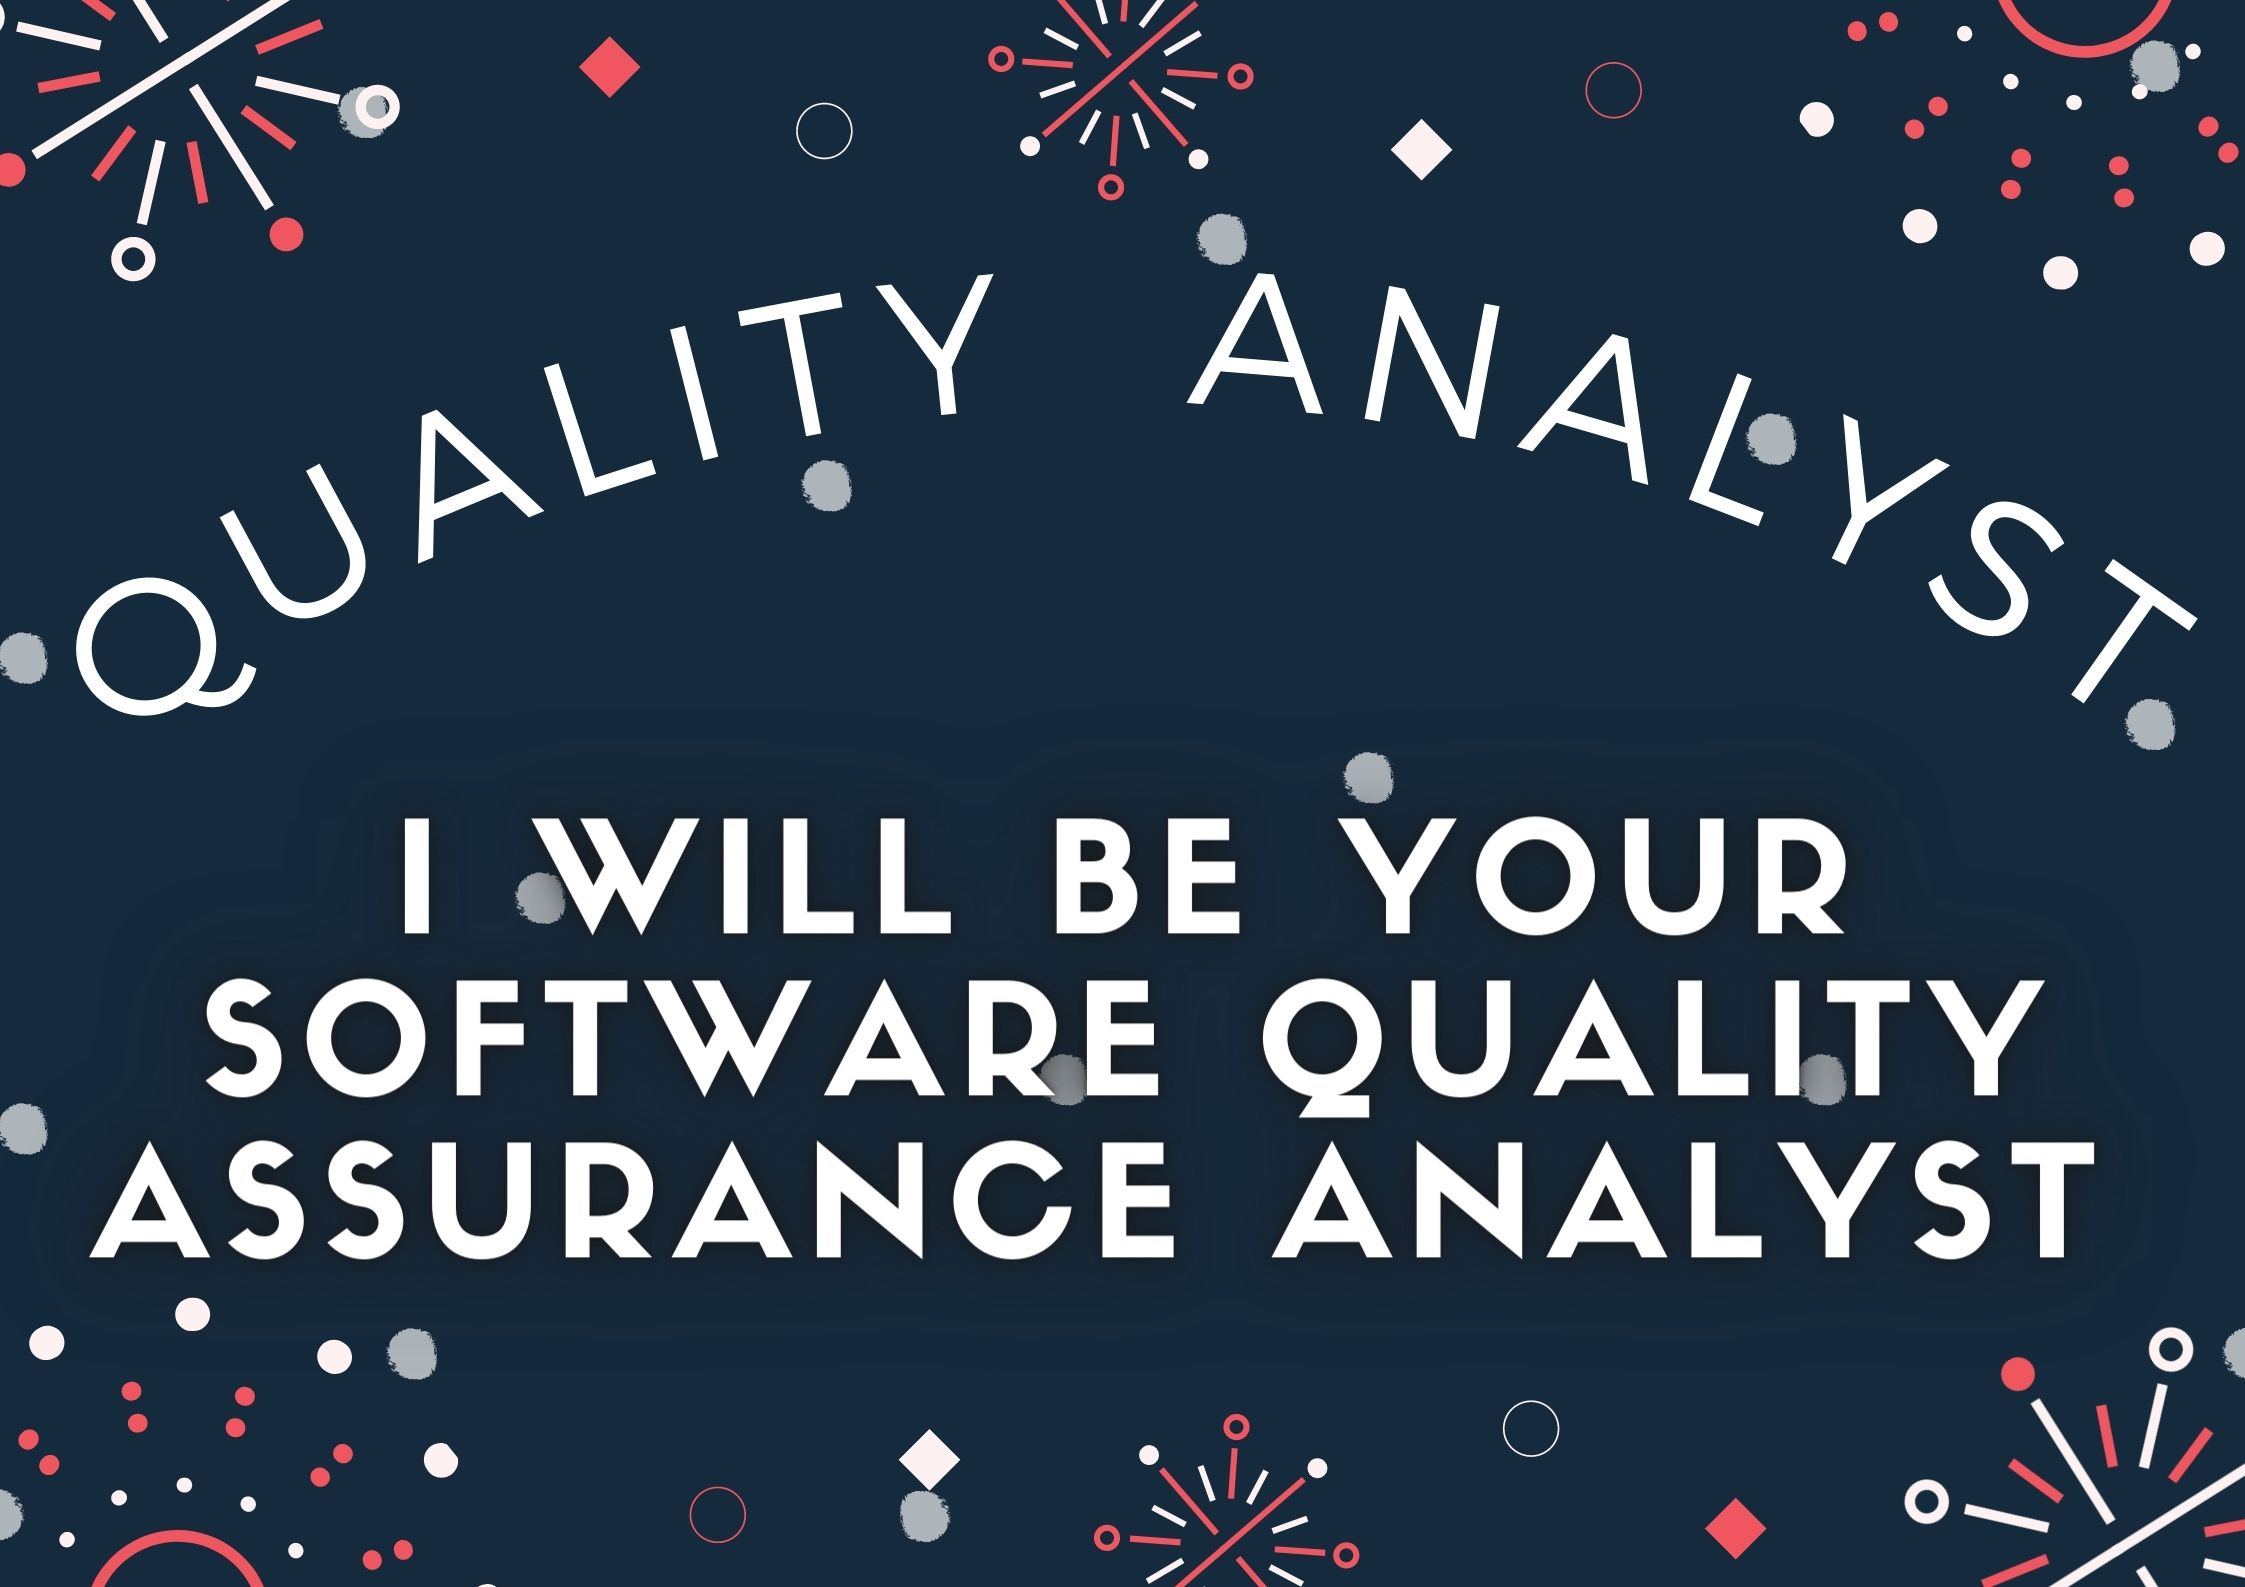 I will be your Software quality assurance analyst